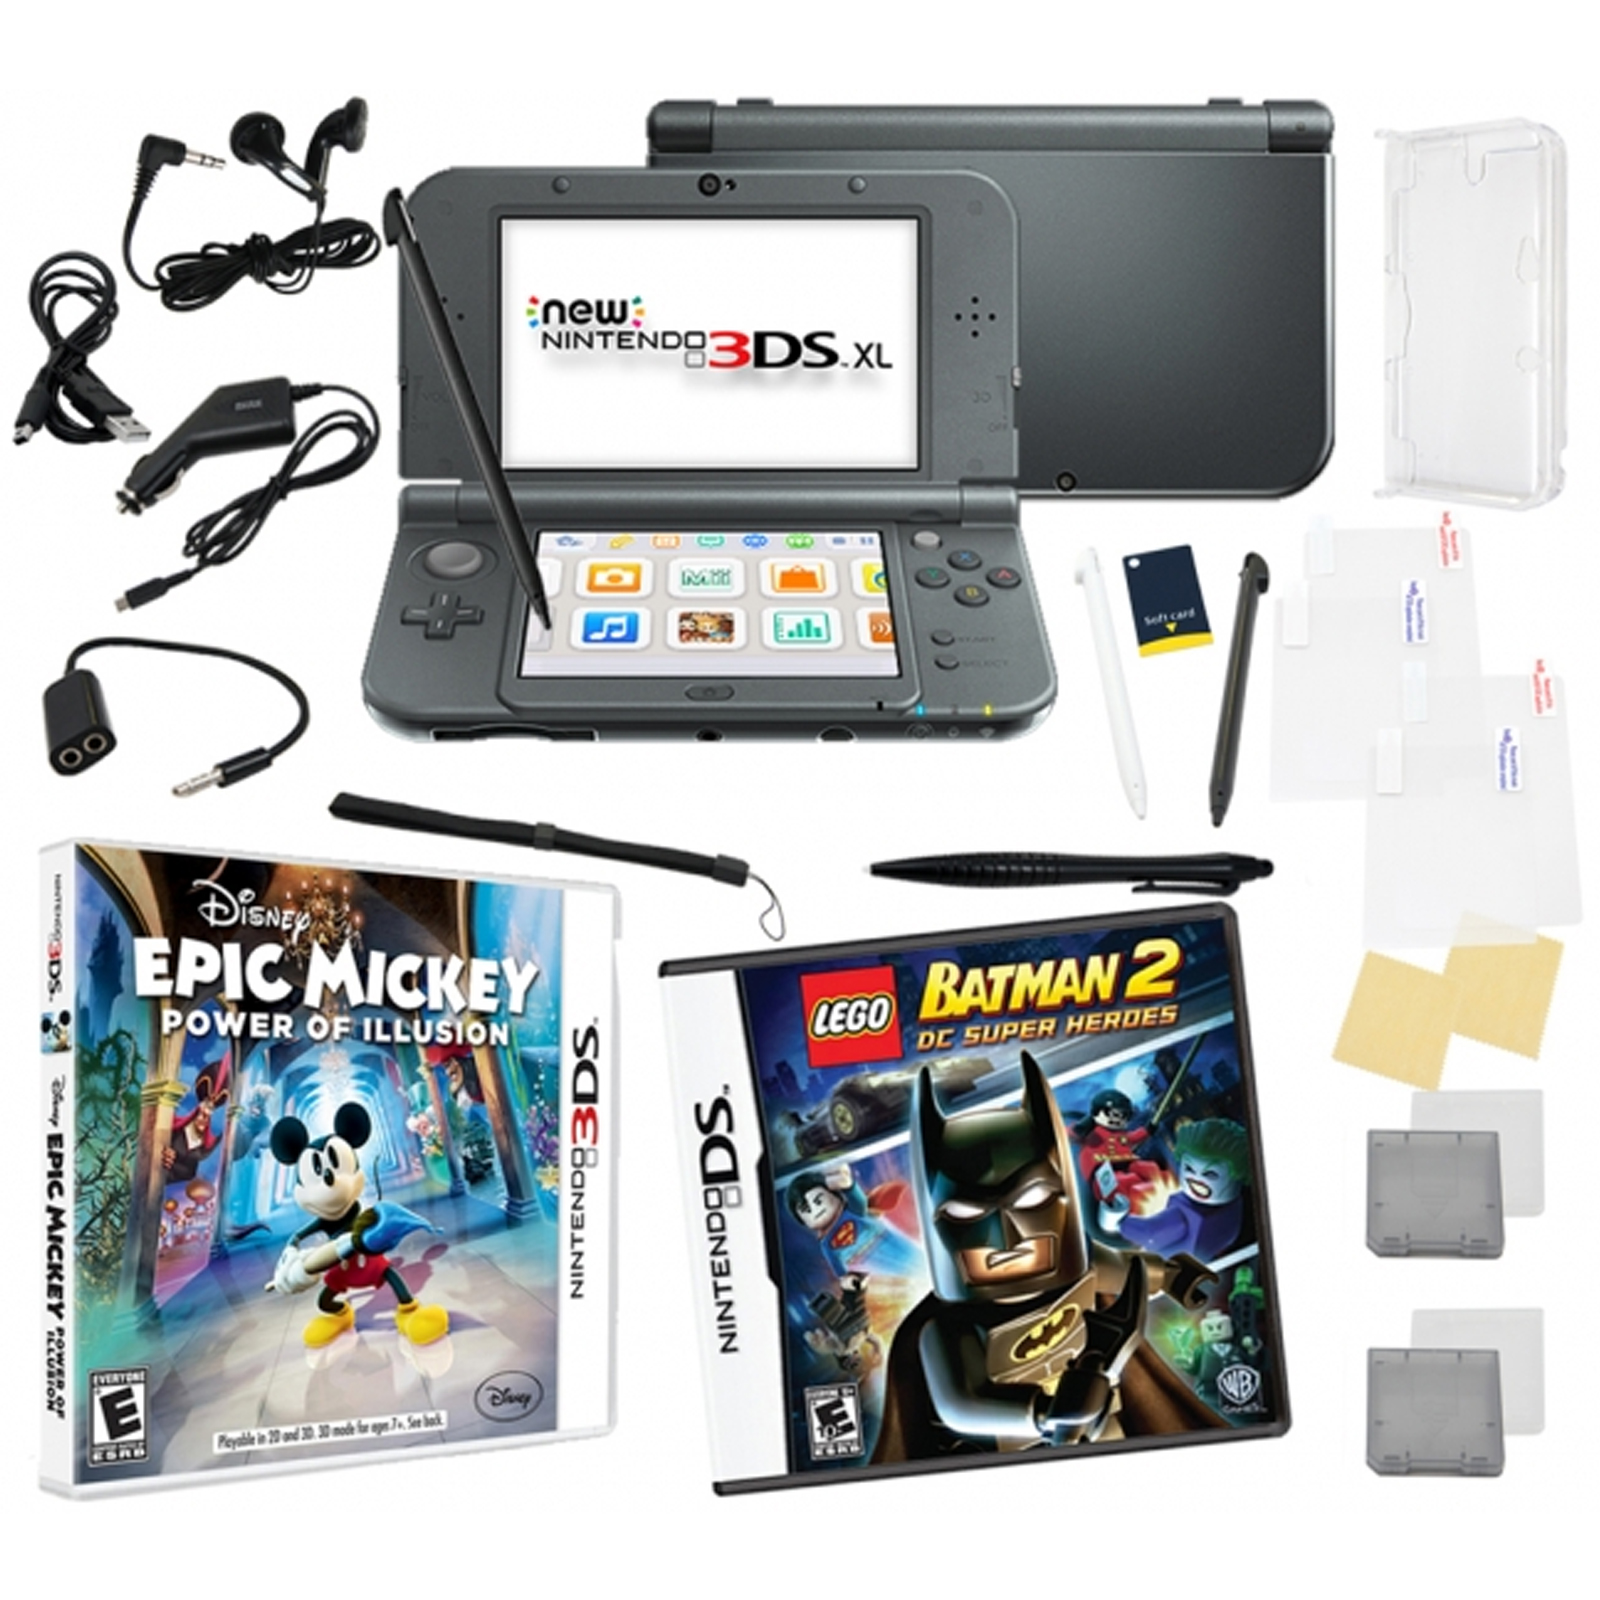 New Nintendo 3DS XL Black Bundle with 2 Games & 17 in 1 Kit